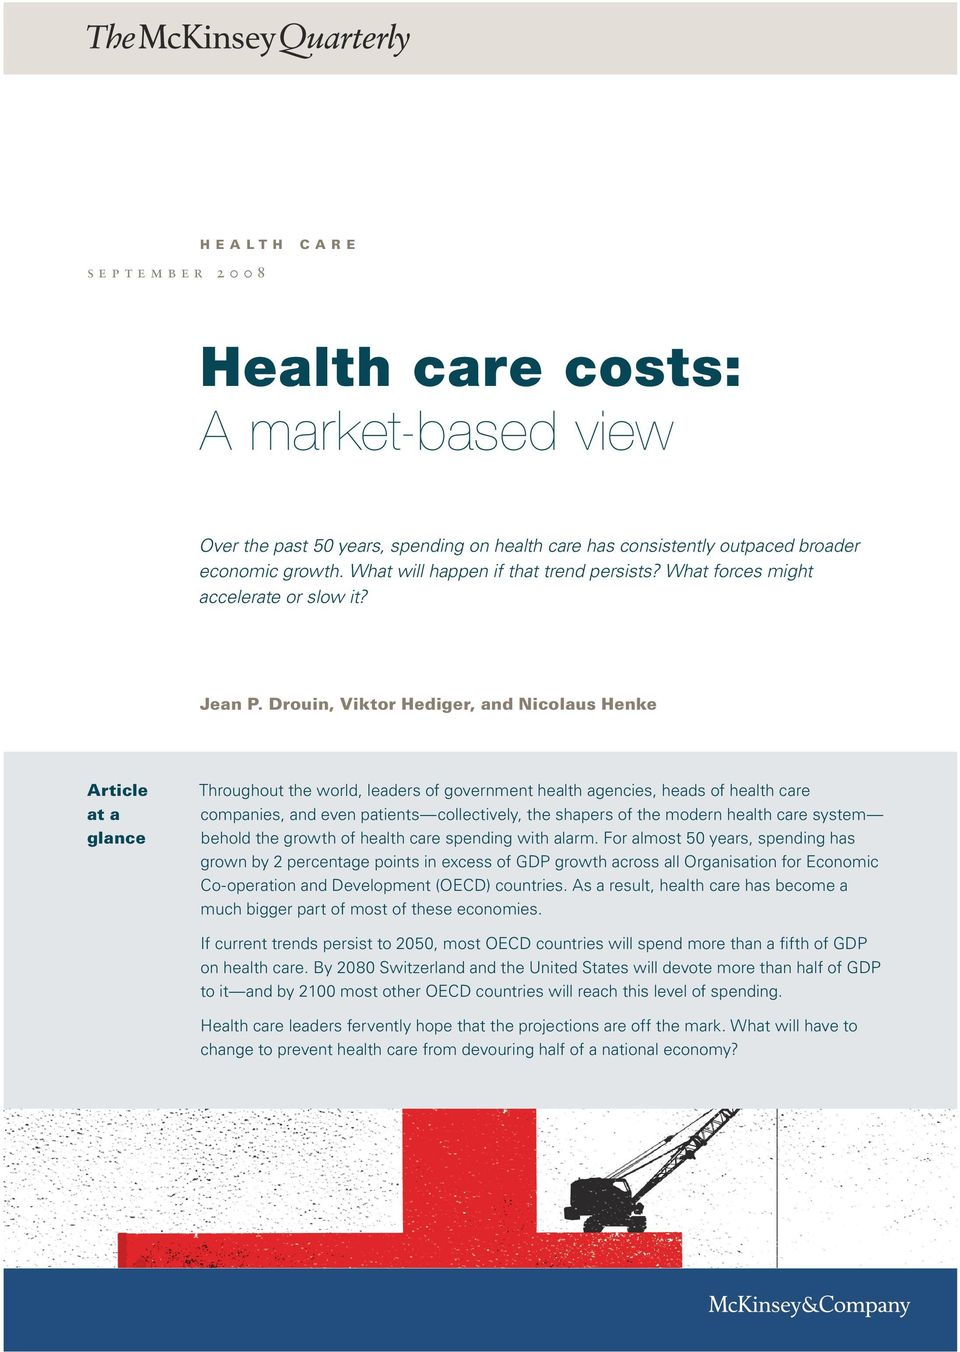 Drouin, Viktor Hediger, and Nicolaus Henke Article at a glance Throughout the world, leaders of government health agencies, heads of health care companies, and even patients collectively, the shapers